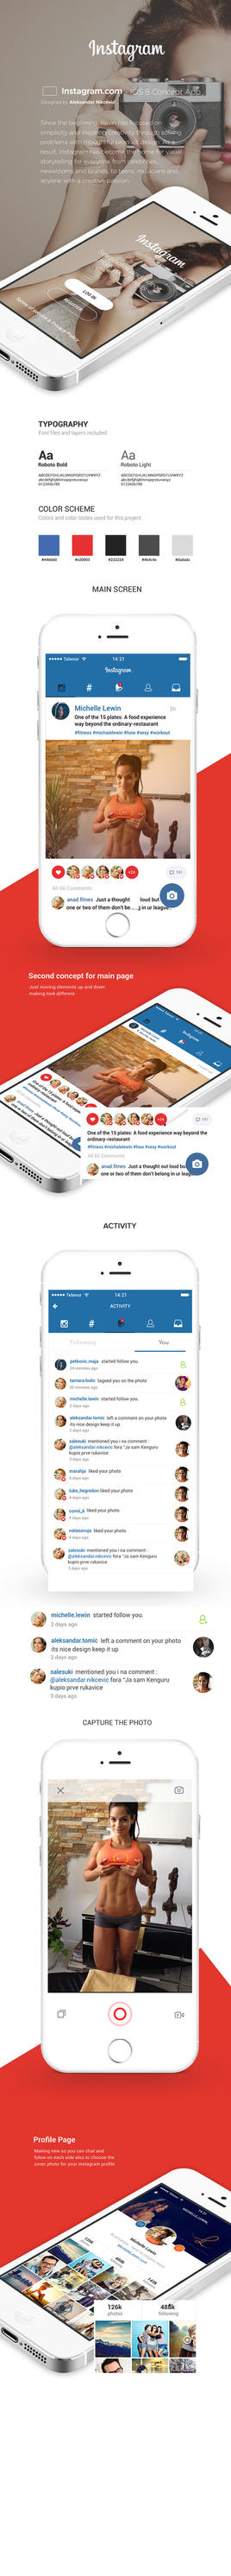 Instagram IOS 8 Concept App Design by vasiligfx